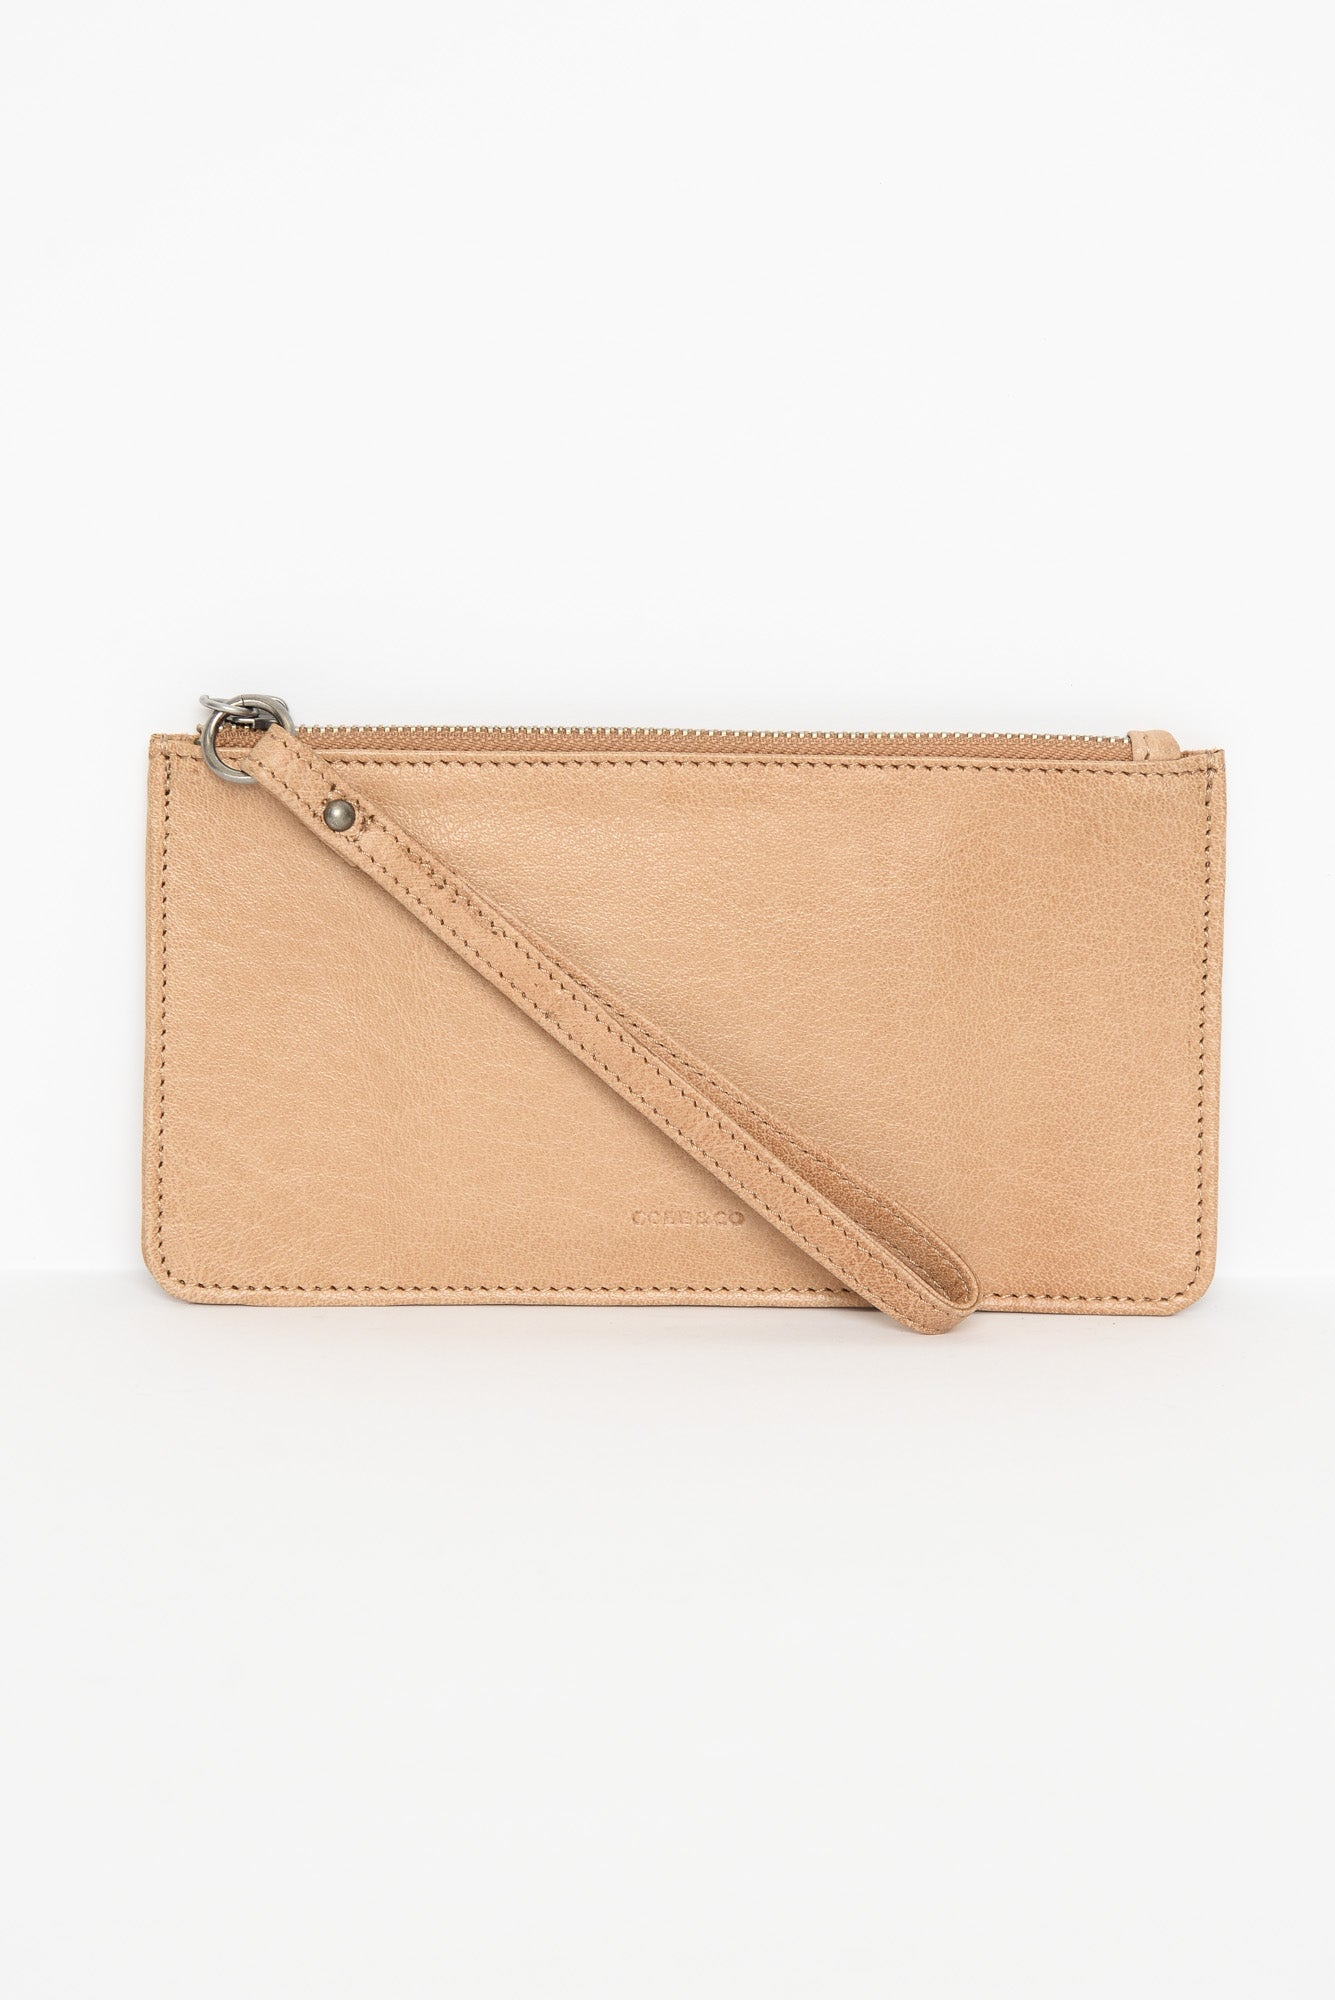 Vaucluse Camel Leather Medium Pouch